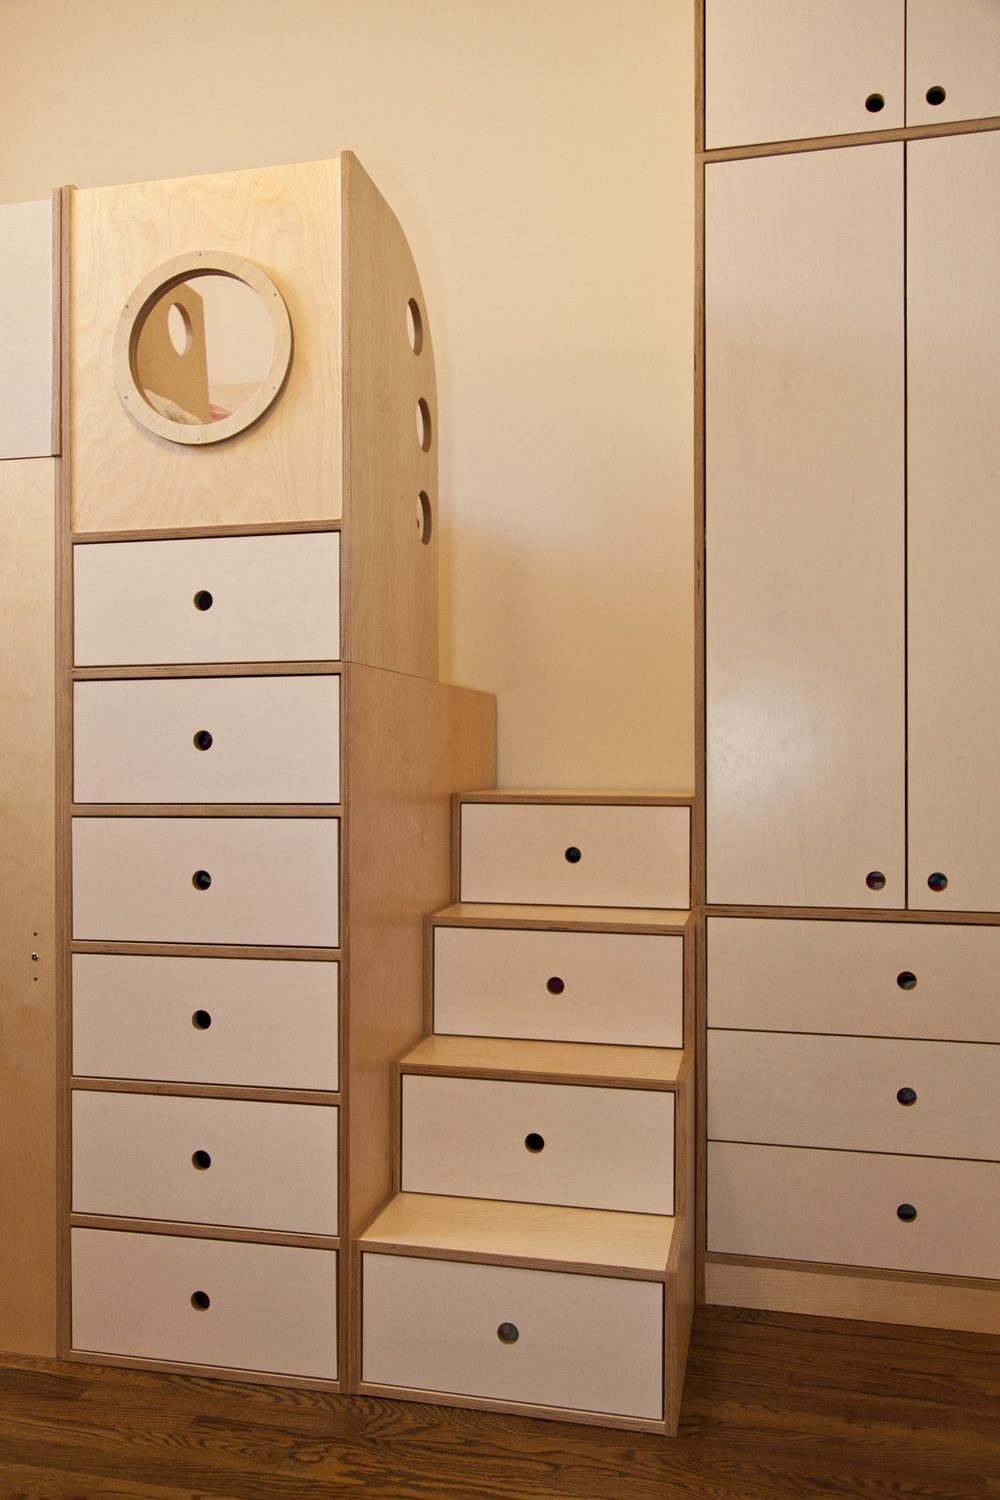 U-shaped stairs with 10 storage drawers and a porthole above to peer from